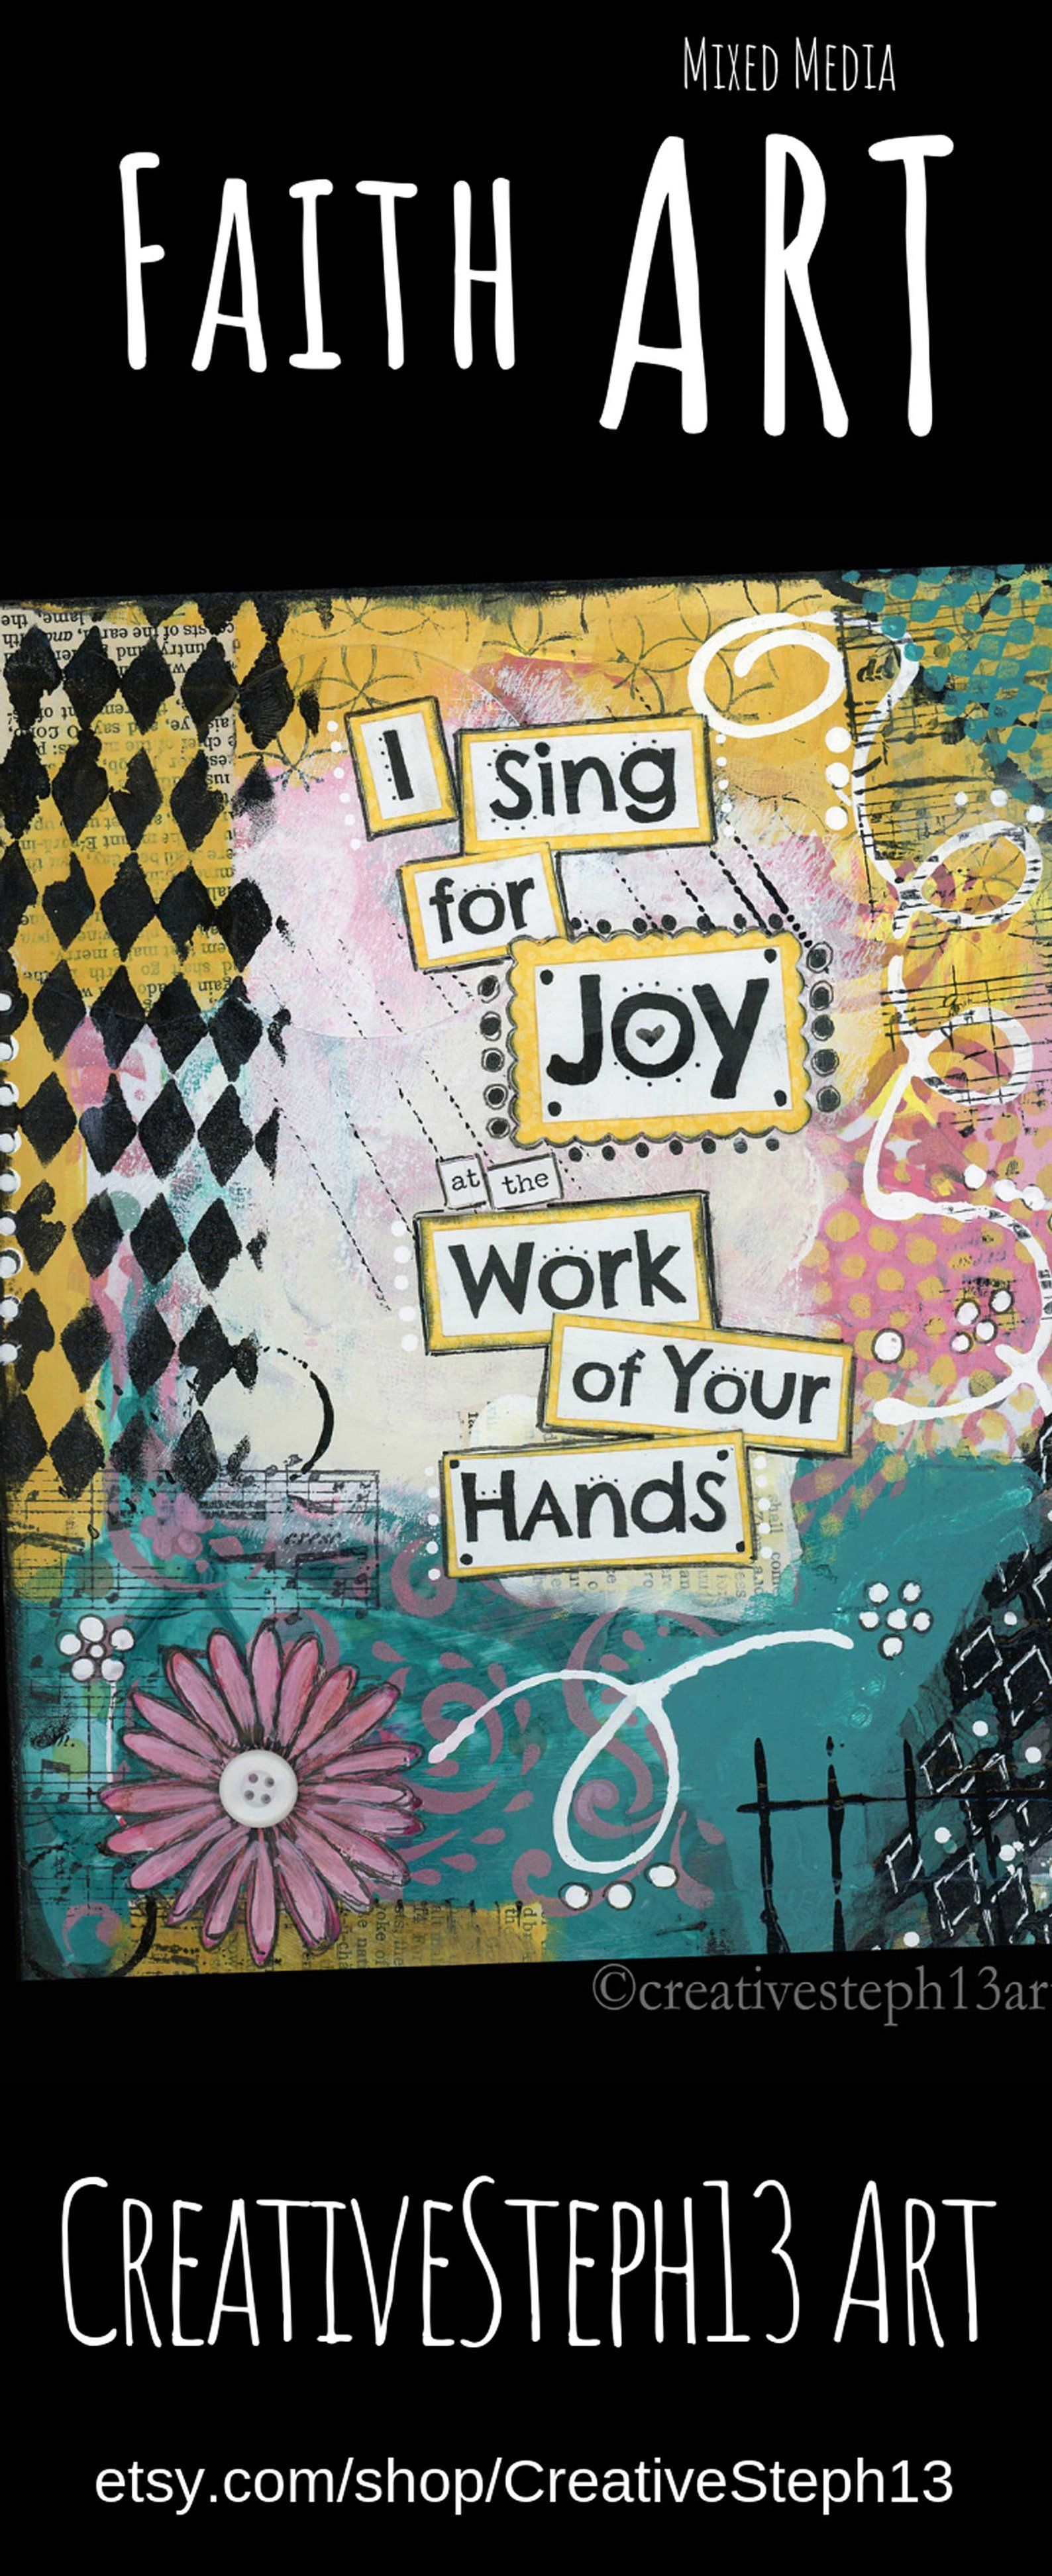 Christian faith art i sing for joy at the work of your